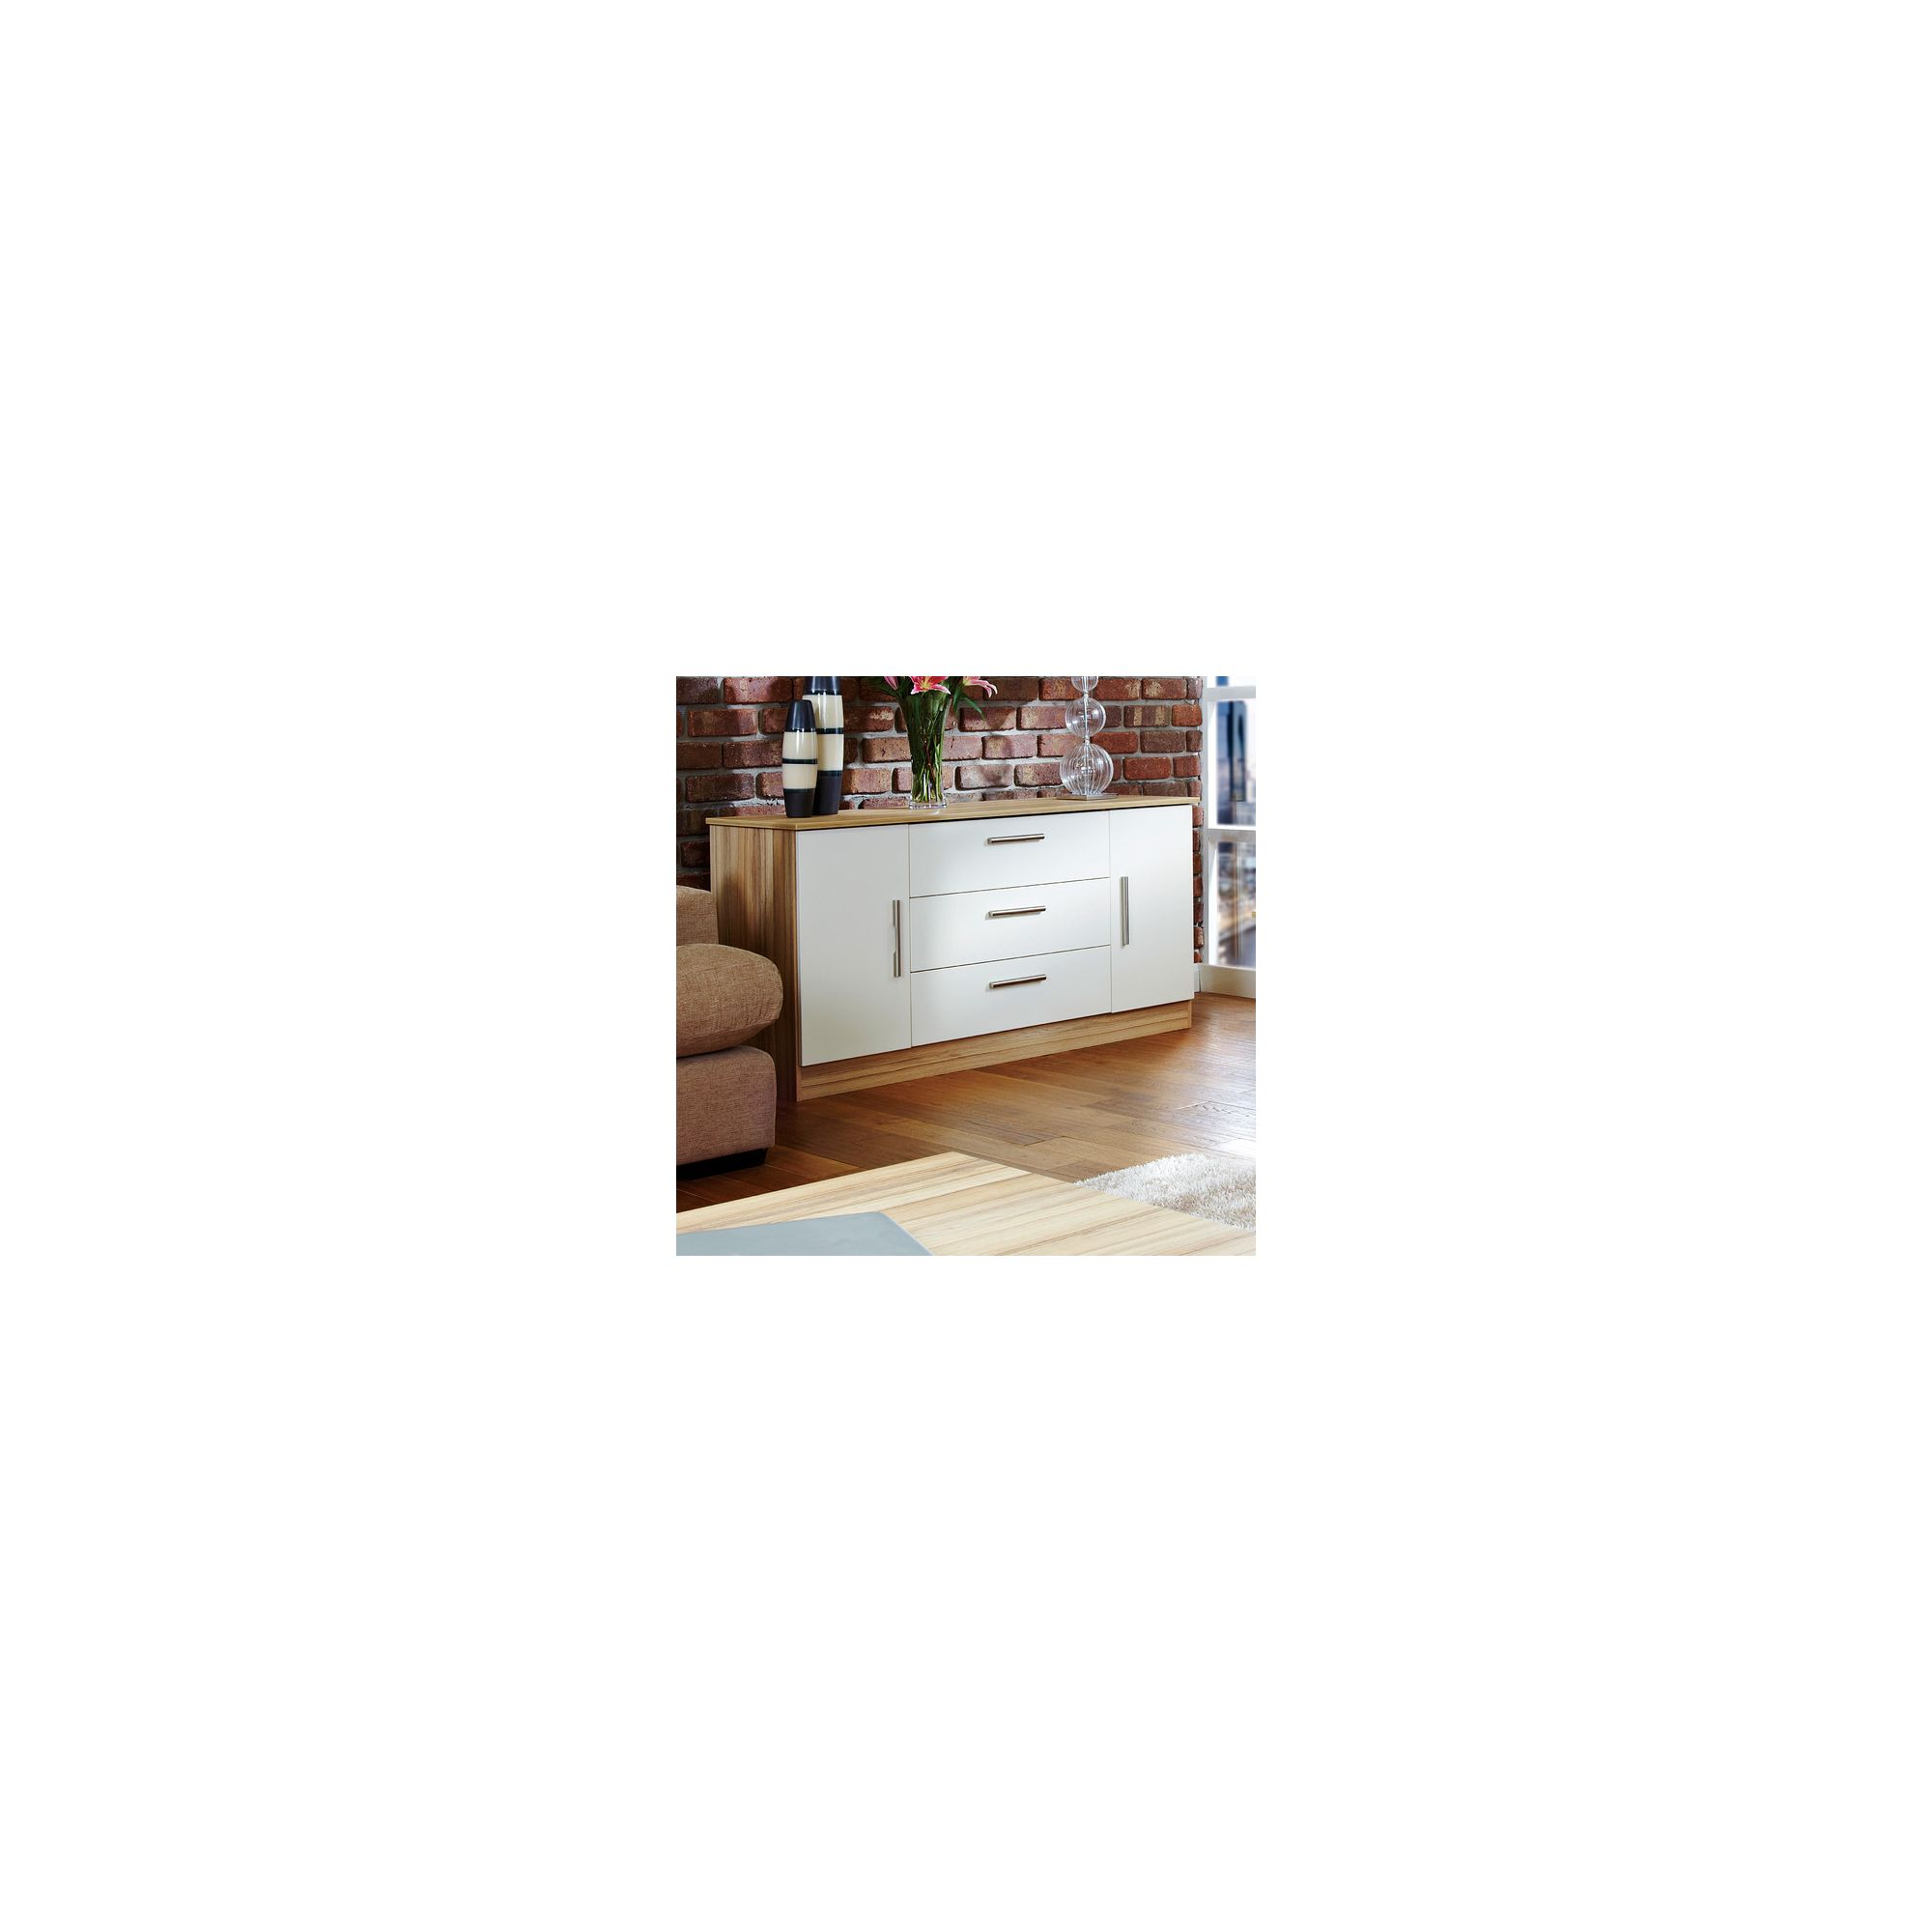 Welcome Furniture Living Room Wide 2 Door / 3 Drawer Unit - Vanilla/Cocobola at Tesco Direct